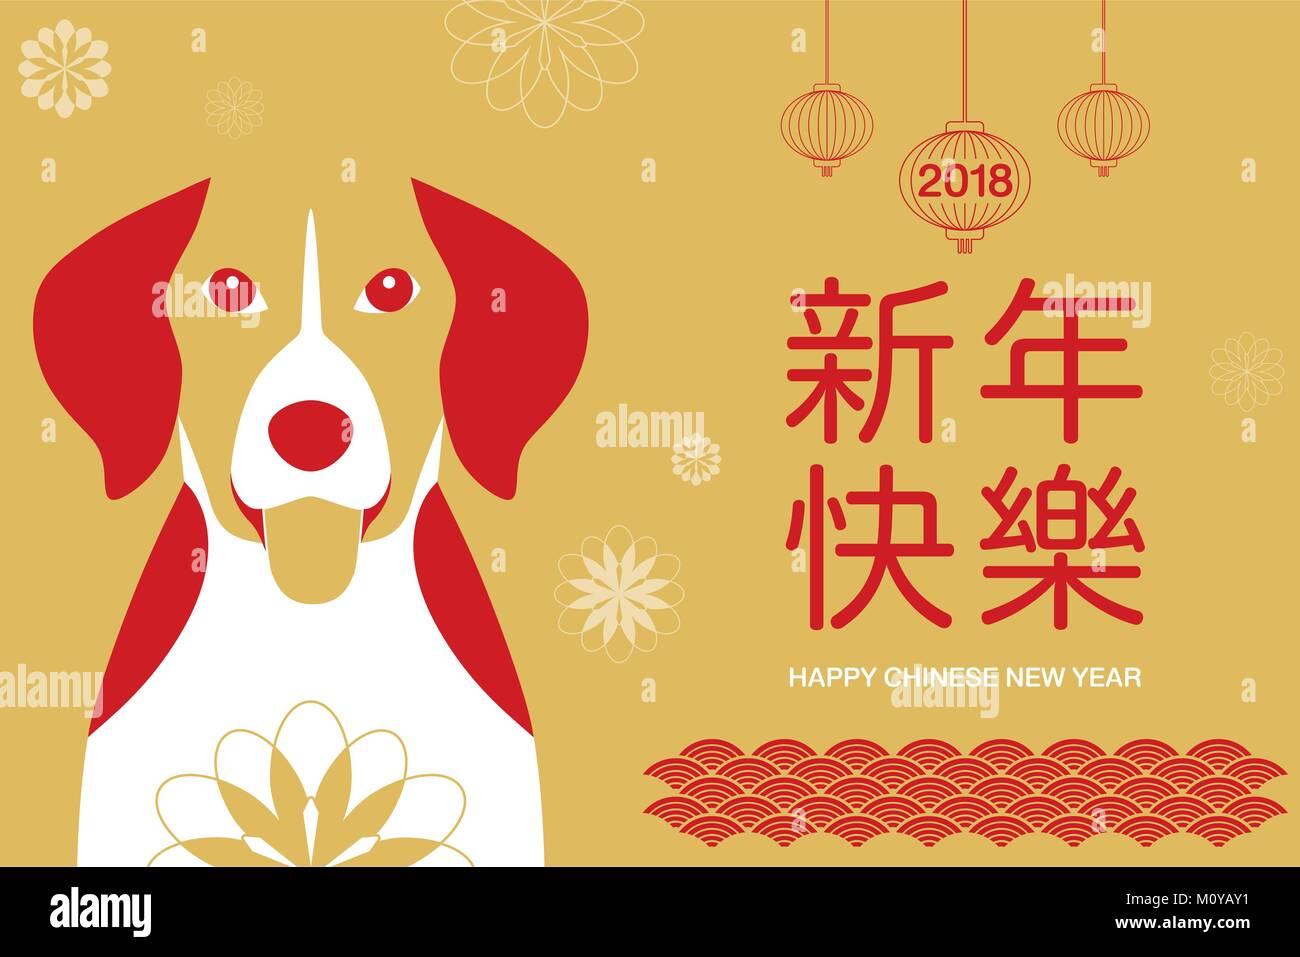 Chinese new year greeting card with dog cherry blossom and lantern chinese new year greeting card with dog cherry blossom and lantern stock vector art illustration vector image 172704981 alamy kristyandbryce Images